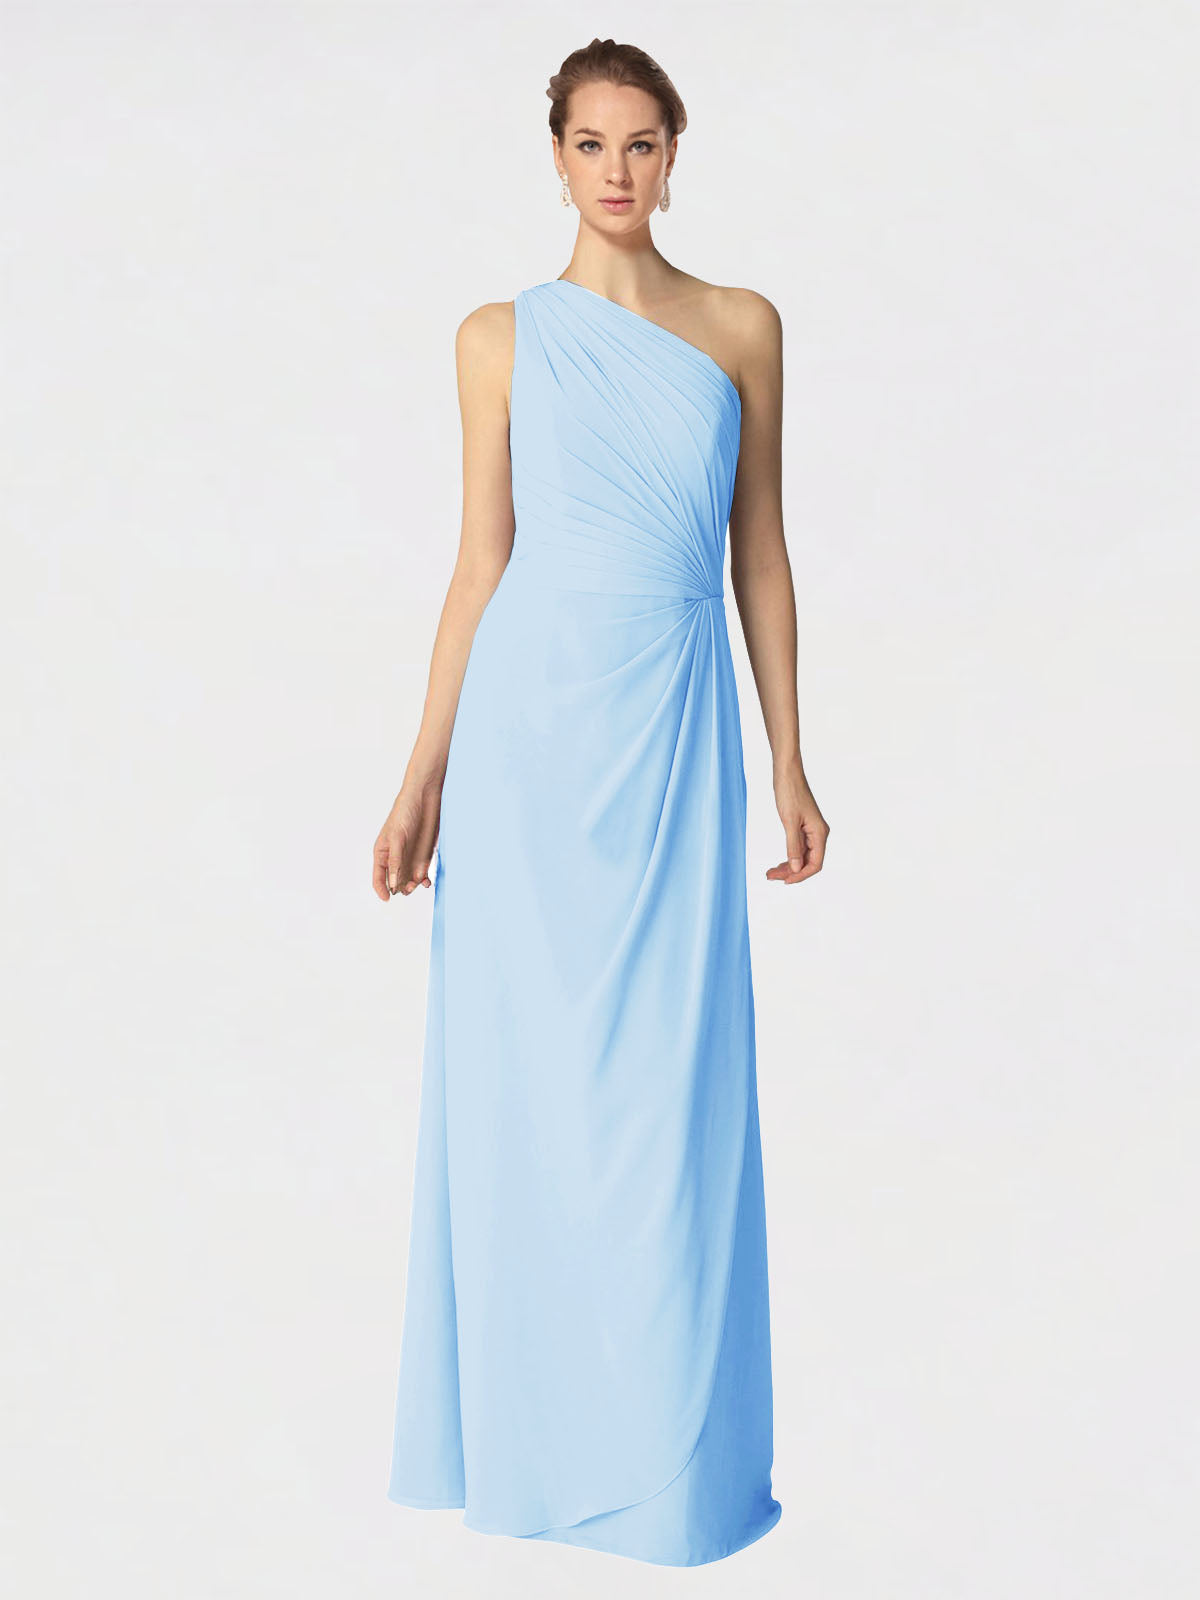 Long A-Line One Shoulder Sleeveless Light Sky Blue Chiffon Bridesmaid Dress Aurora